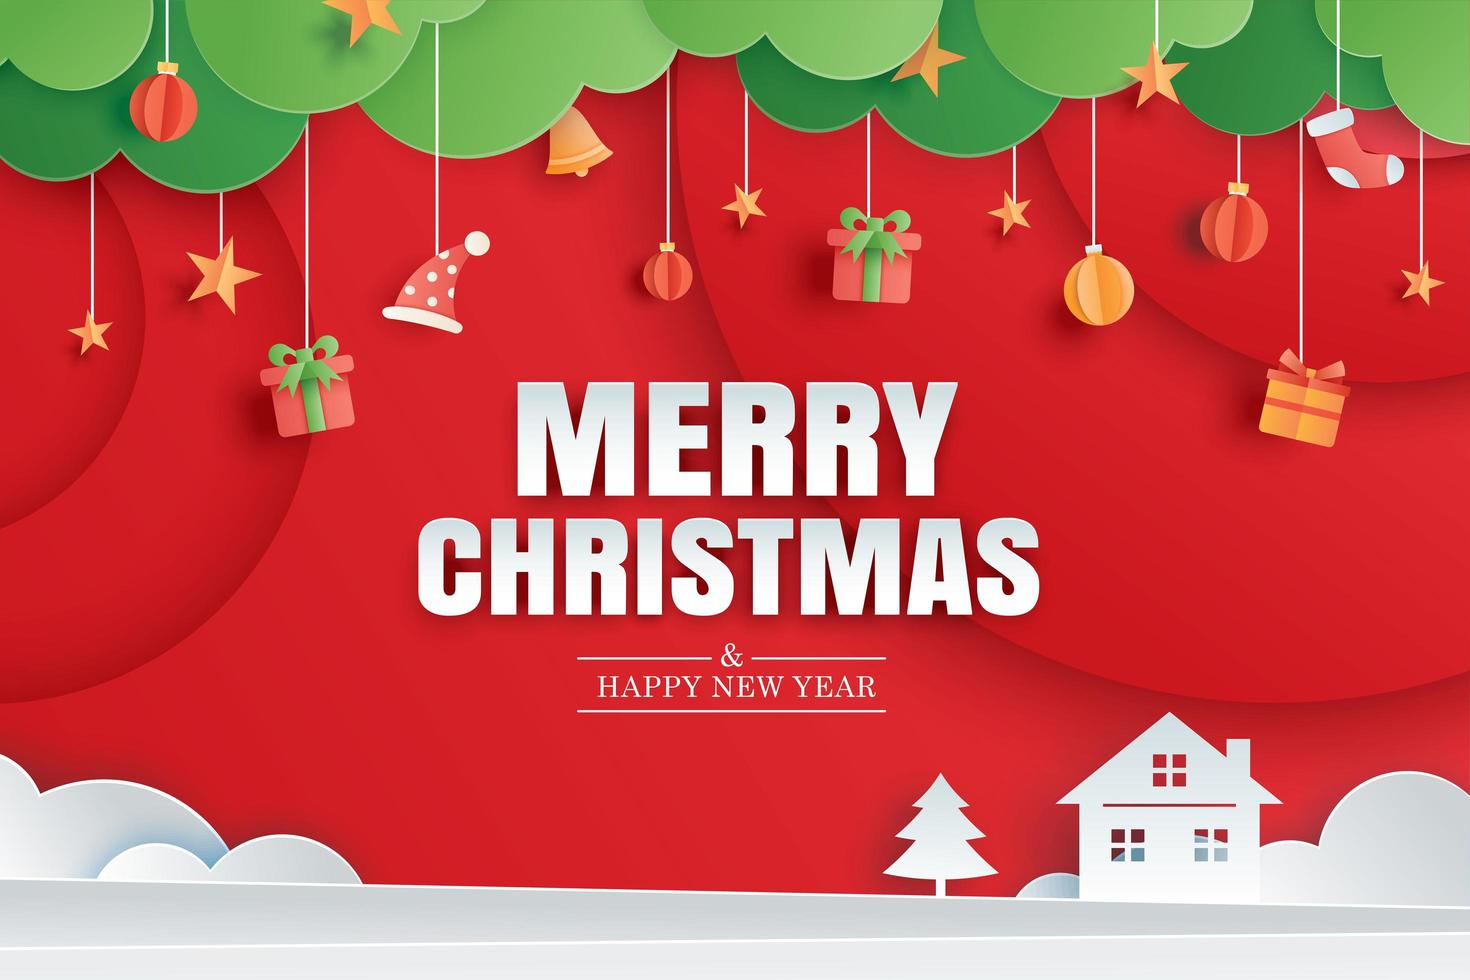 Merry christmas and happy new year red greeting card in paper art banner template. Use for poster, cover, flyer. vector